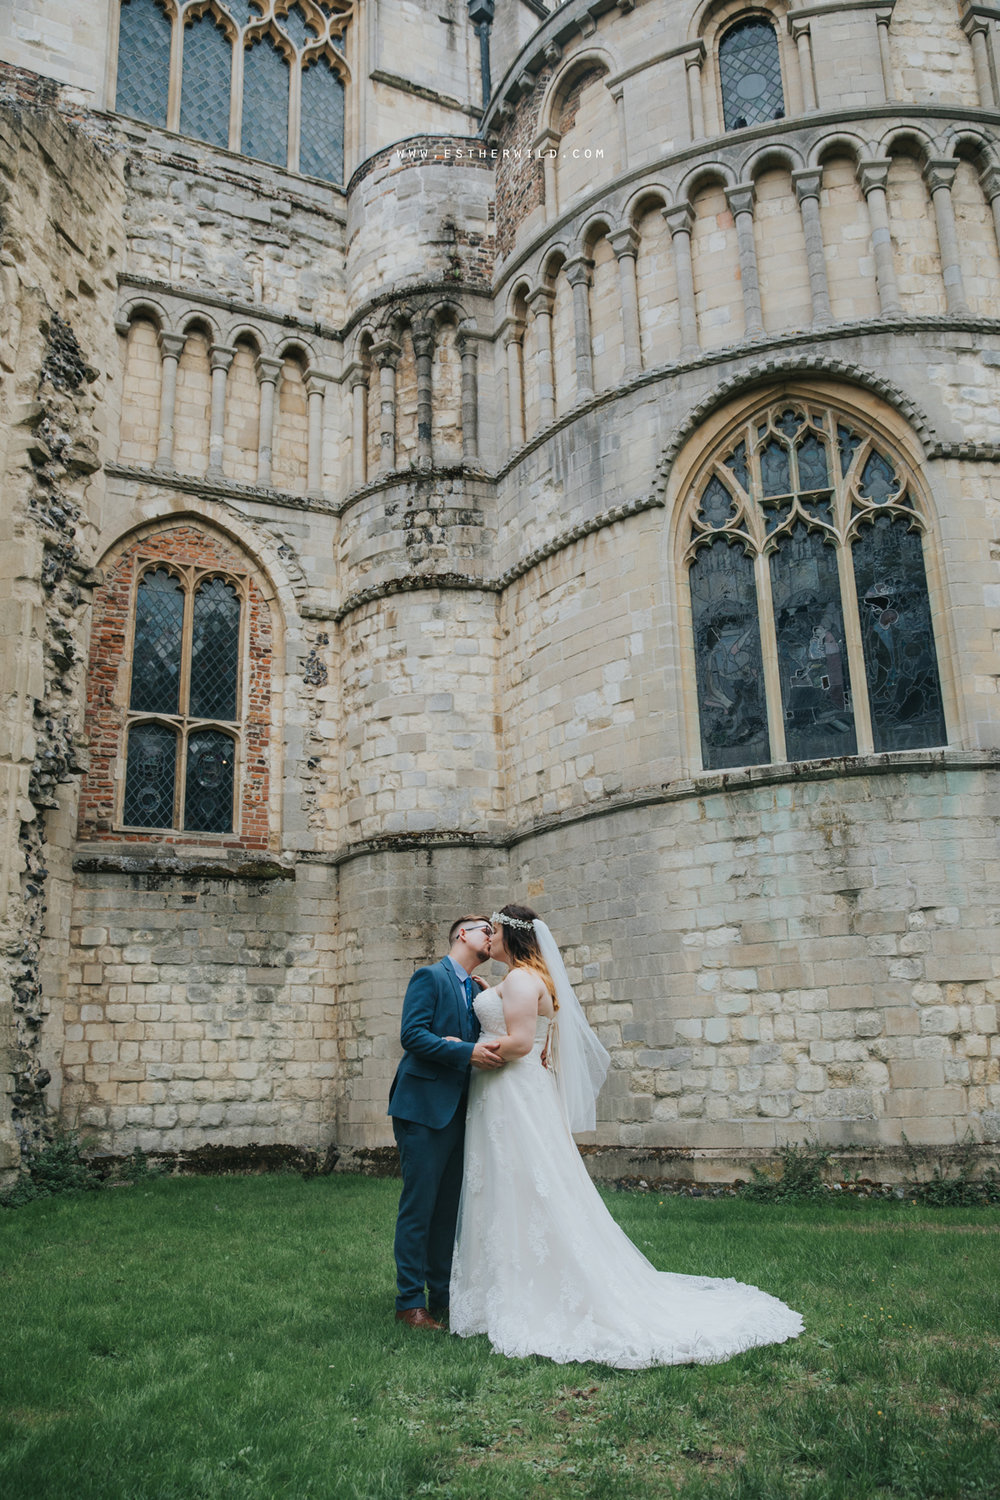 Norwich_Castle_Arcade_Grosvenor_Chip_Birdcage_Cathedral_Cloisters_Refectory_Wedding_Photography_Esther_Wild_Photographer_Norfolk_Kings_Lynn_3R8A1899.jpg